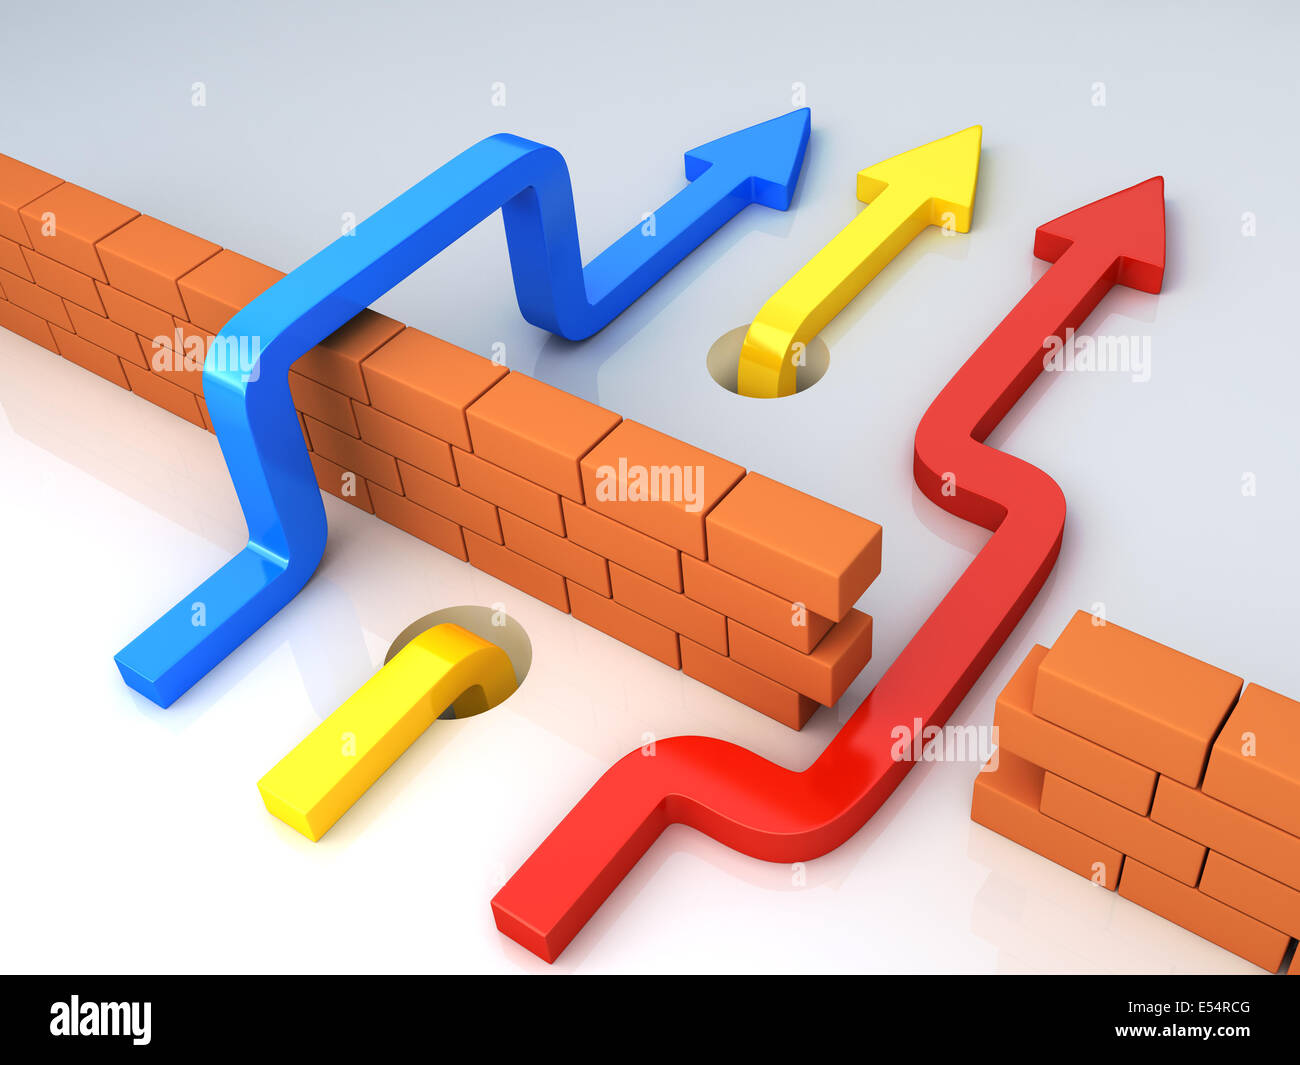 Business overcomes obstacles. conceptual  illustration - Stock Image